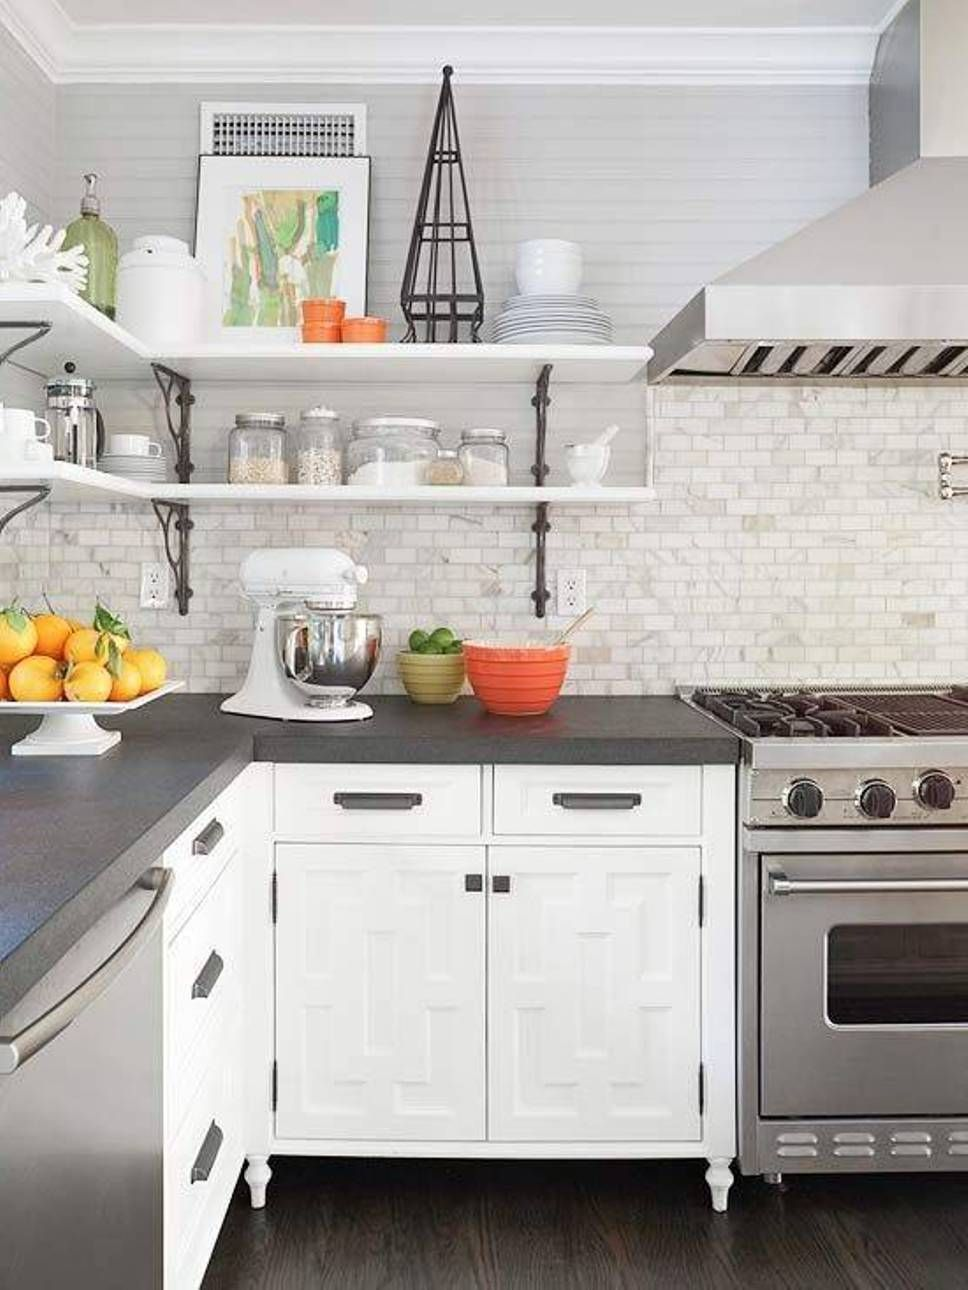 Countertop Color In Grey And White Kitchen Cabinets For